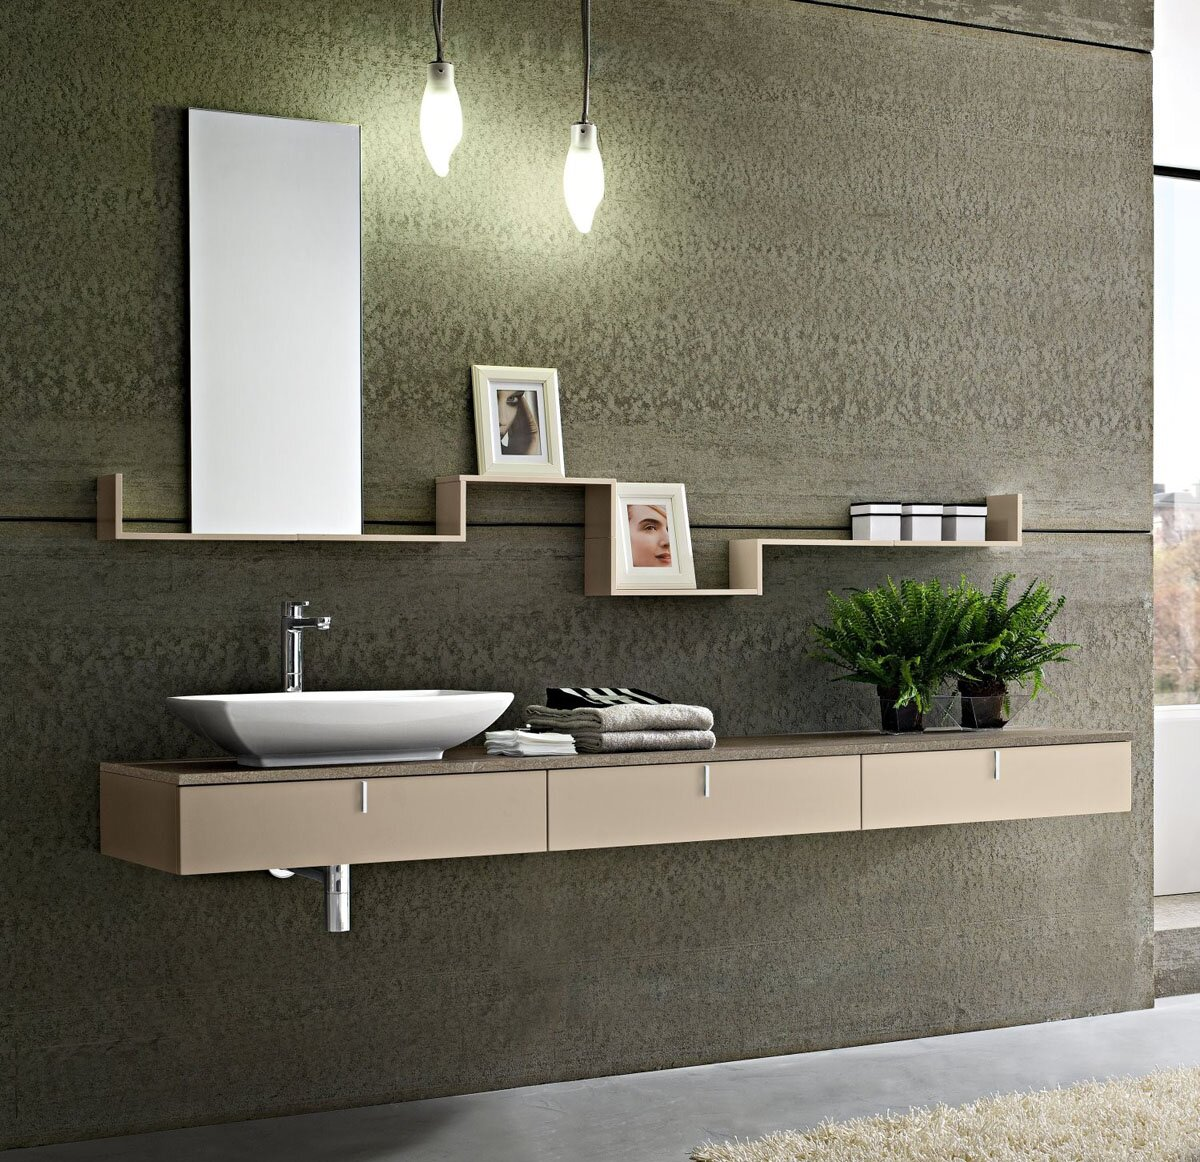 Bathroom Cabinets And Vanities Design : Top designs of modern bathroom vanities